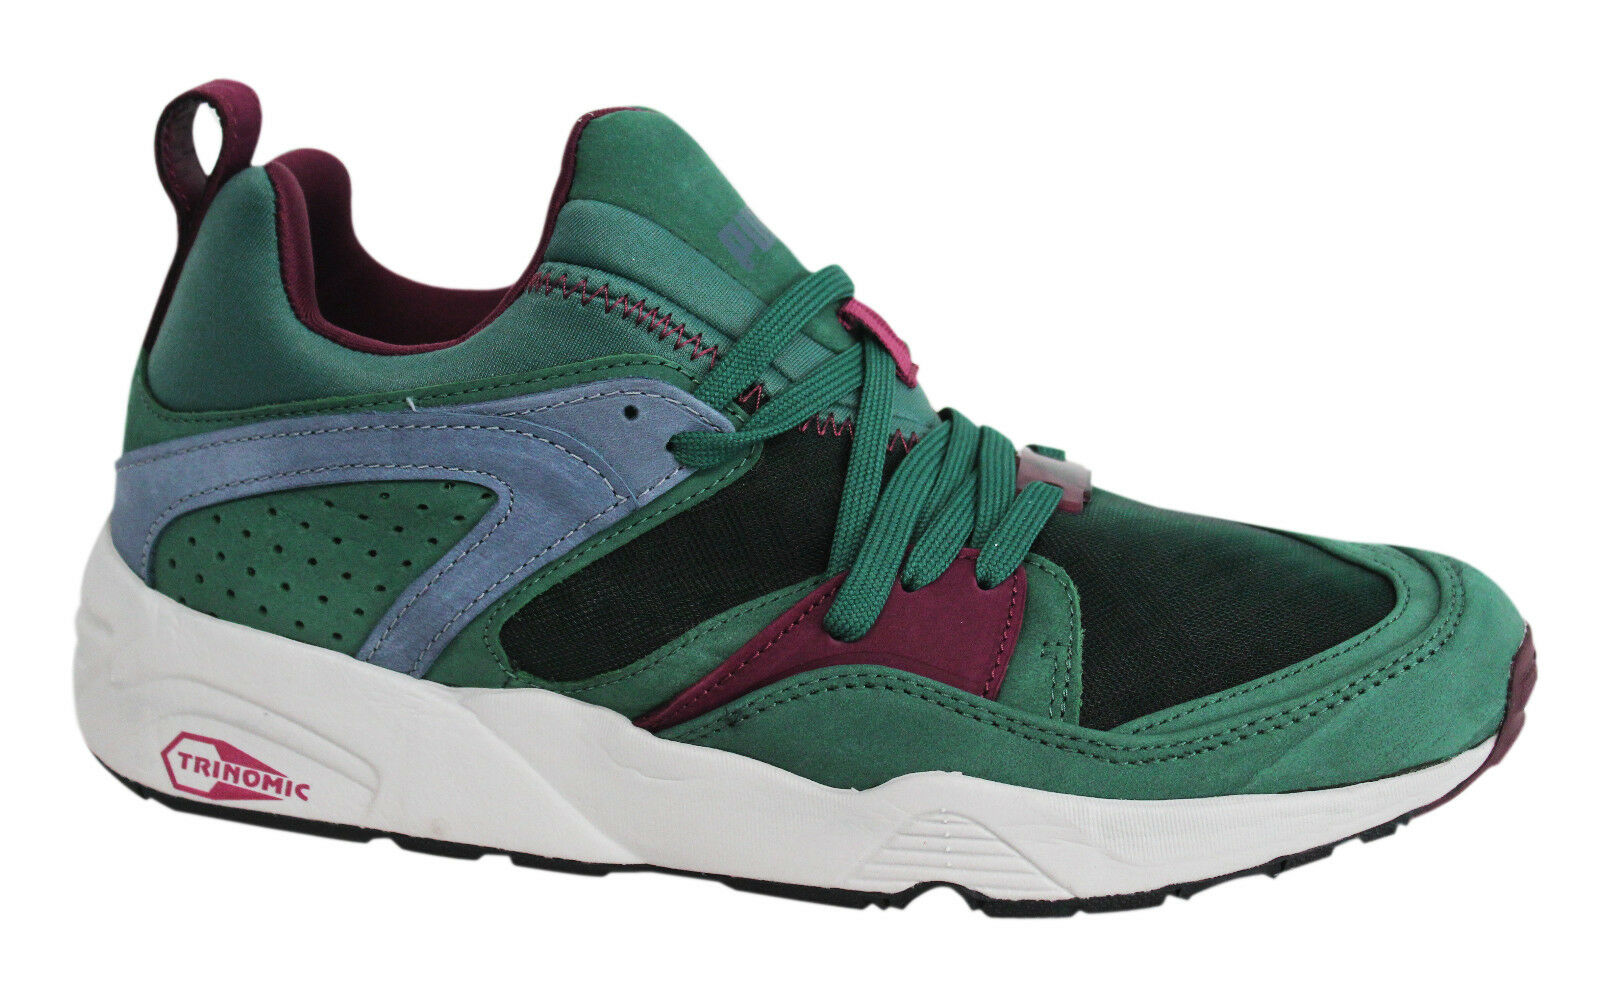 PUMA TRINOMIC BLAZE OF GLORY CRKL Baskets Hommes à enfiler vert 357772 02 U122